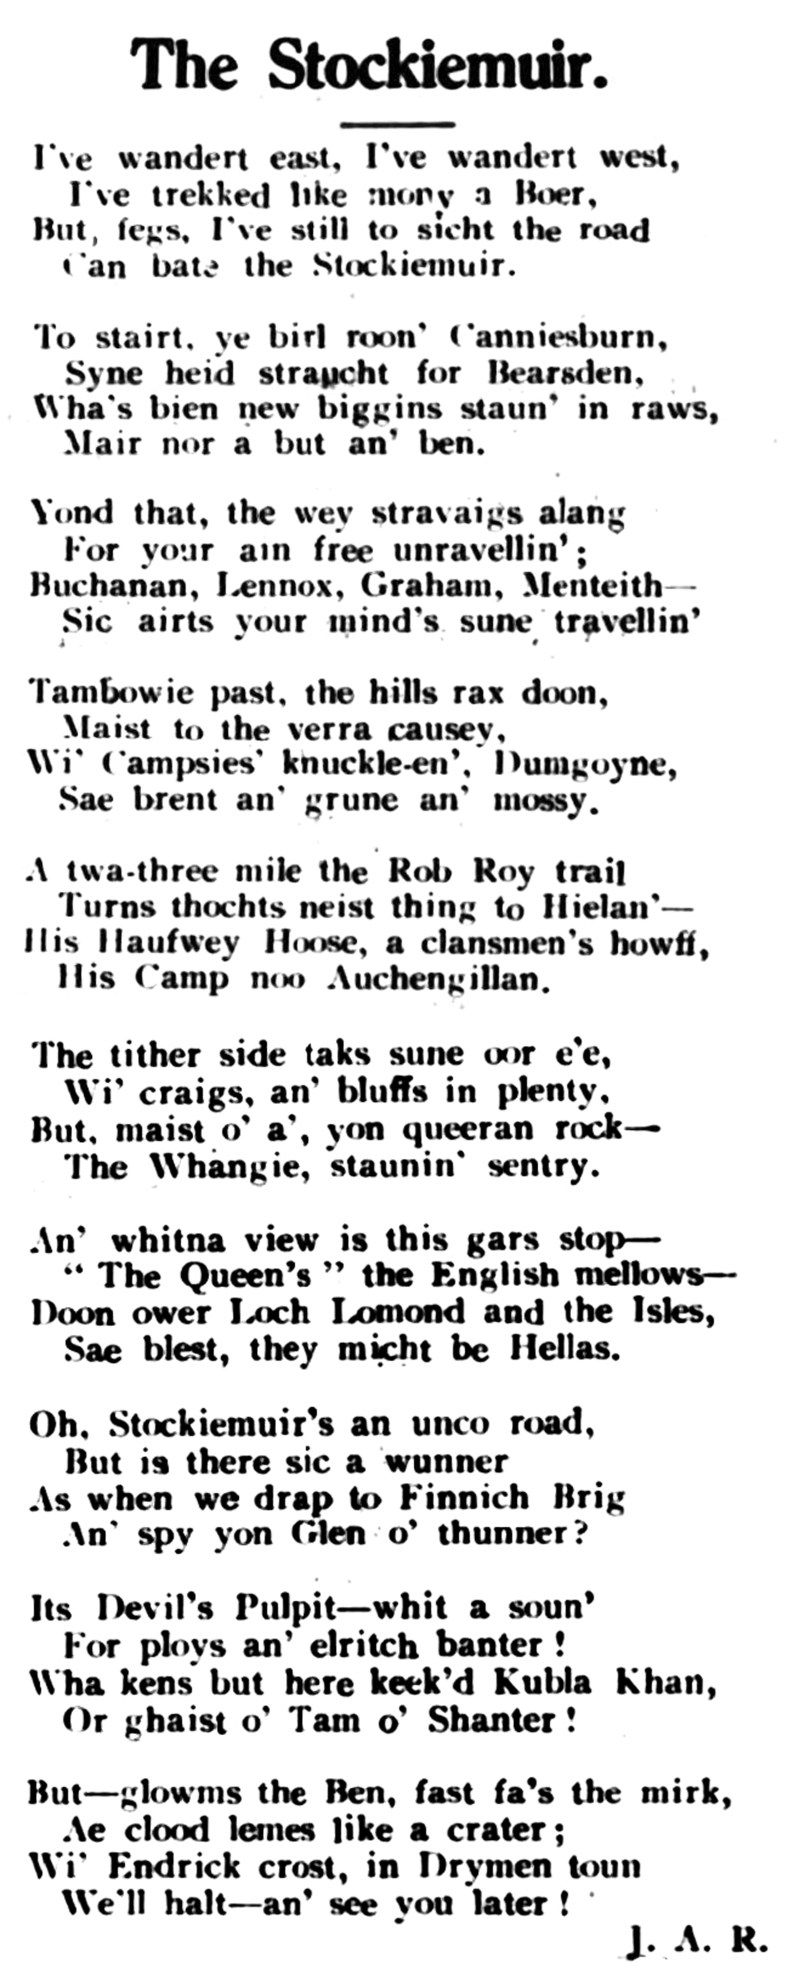 Poem - The Stockiemuir - 1938